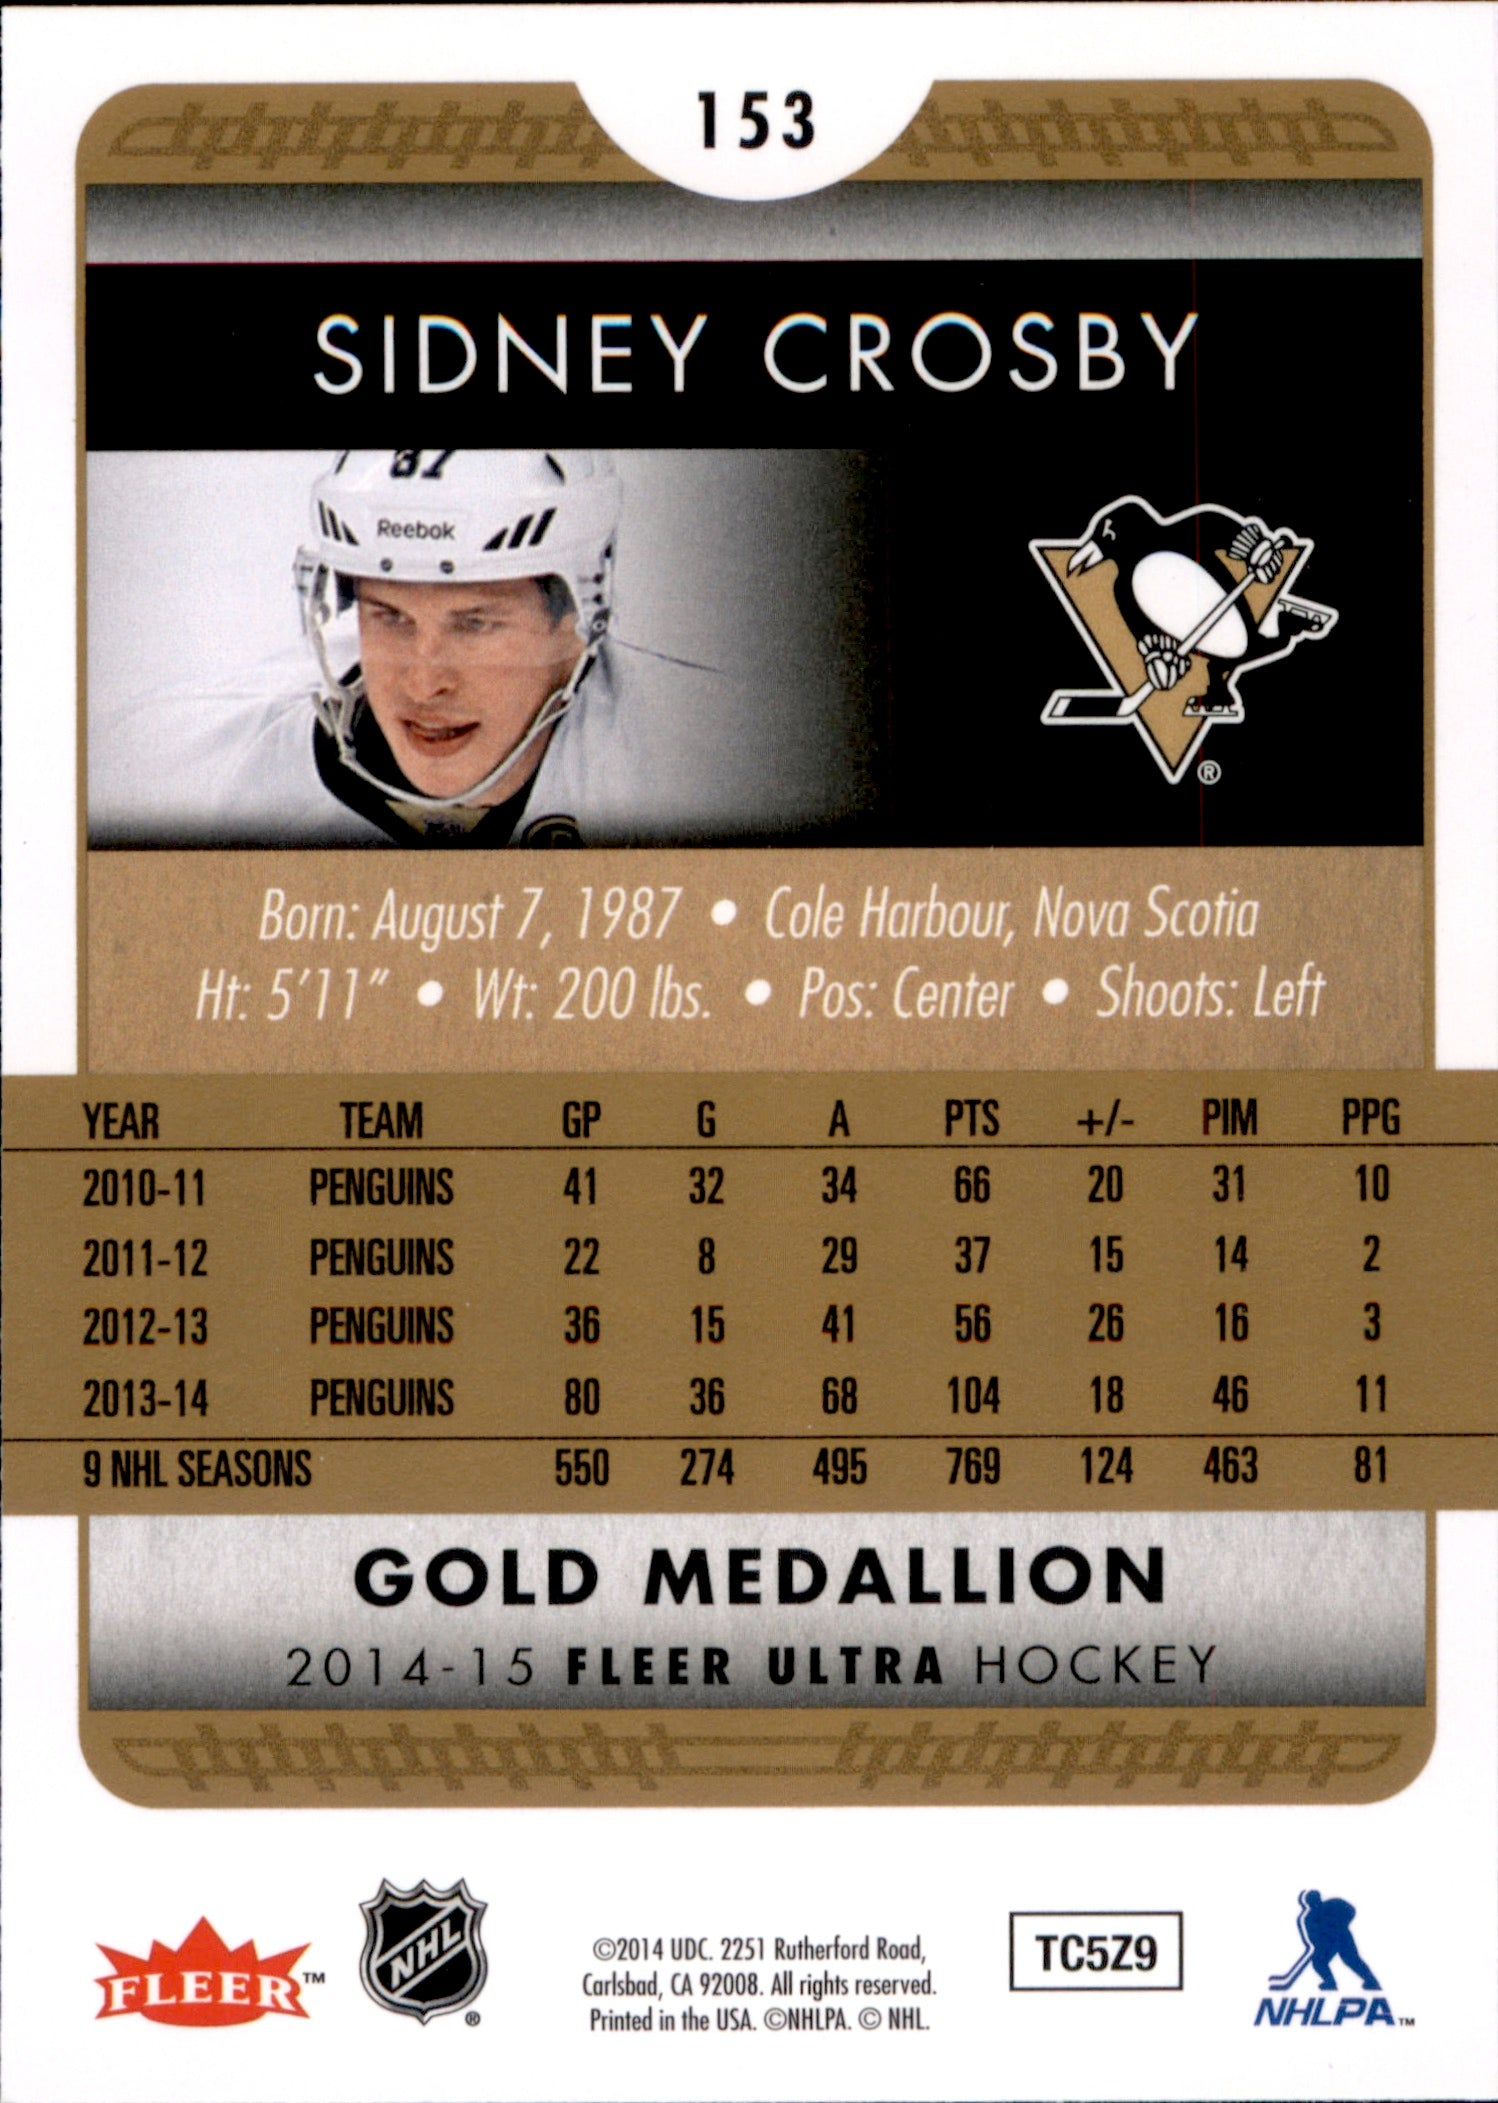 2014-15 Fleer Ultra Gold Medallion #153 Sidney Crosby | Eastridge Sports Cards